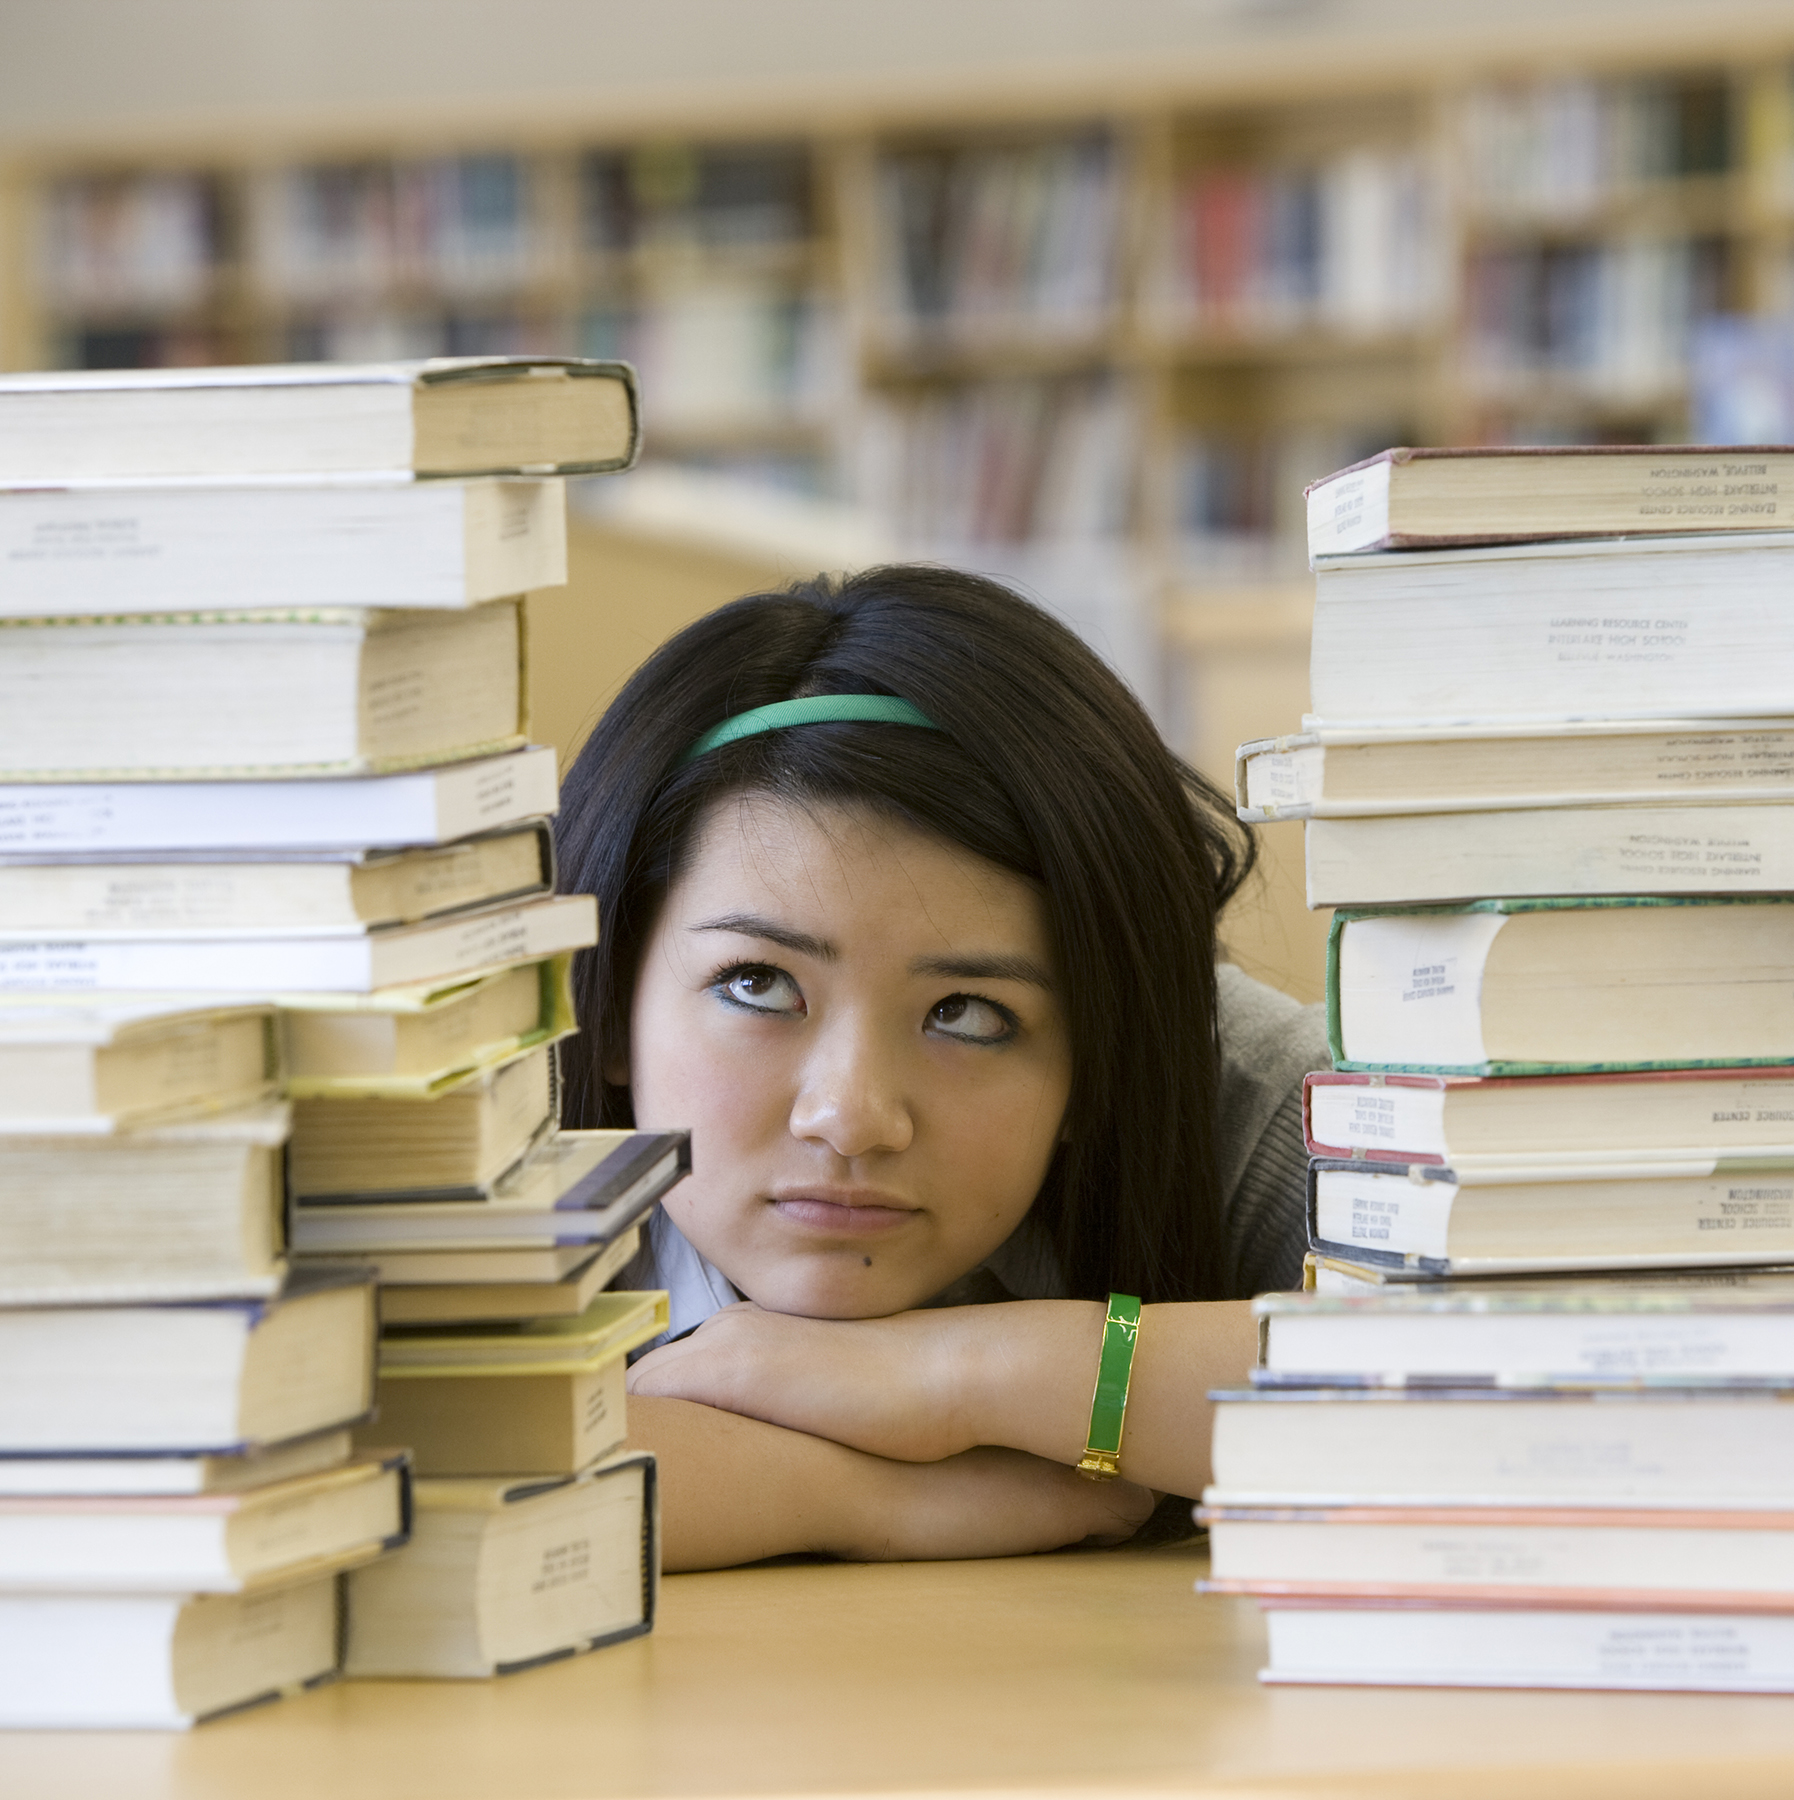 teenager-books-library